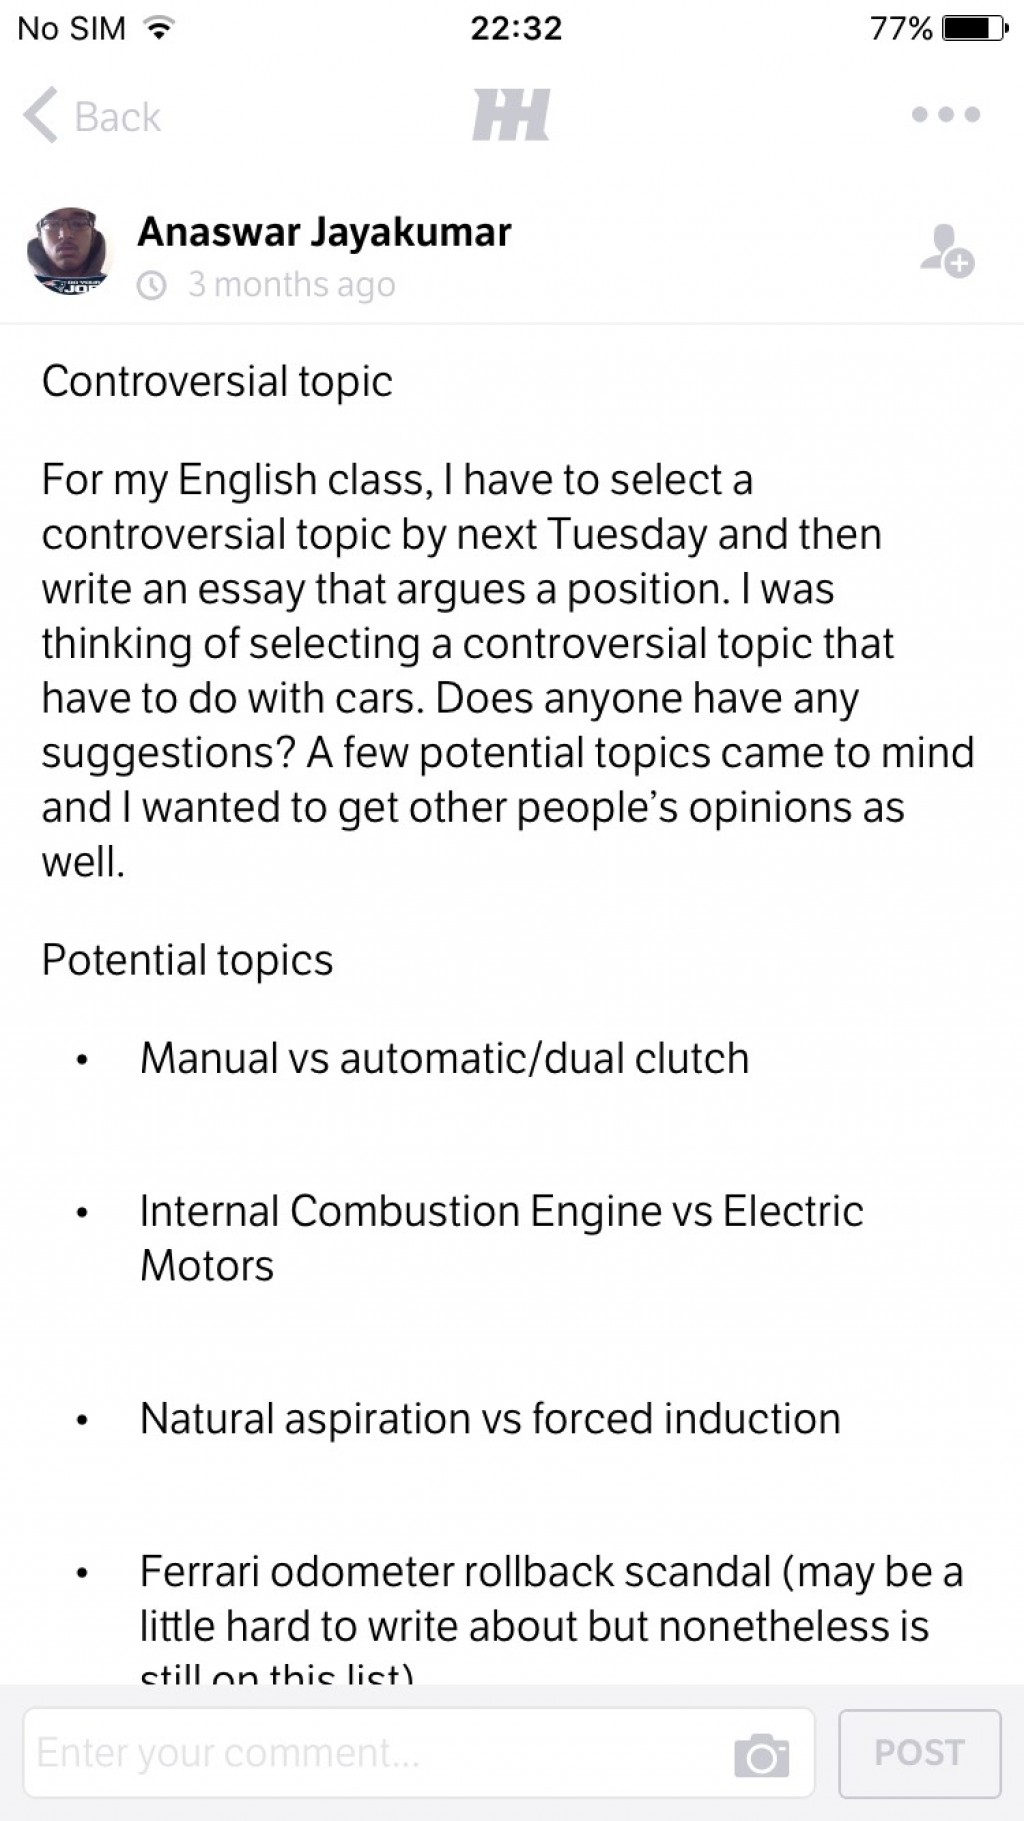 011 Controversial Topic Essay Topics Example Research Paper Outline20 Breathtaking Issue Large